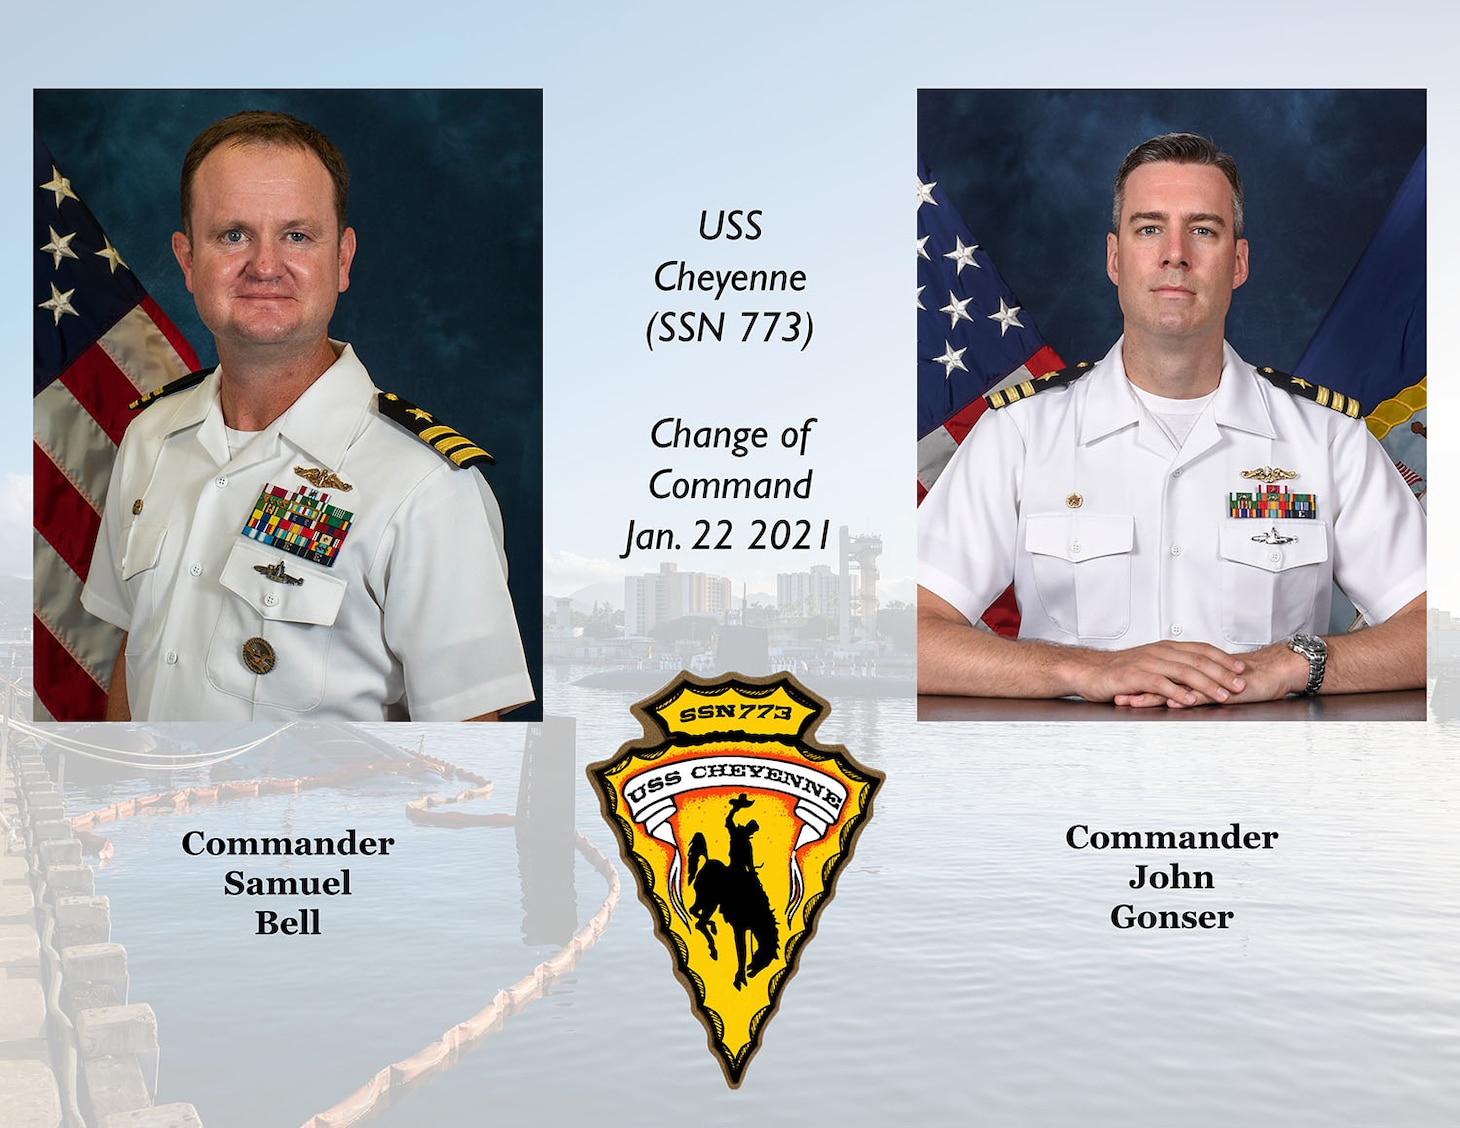 A graphic created to announce the change of command for USS Cheyenne (SSN 773).